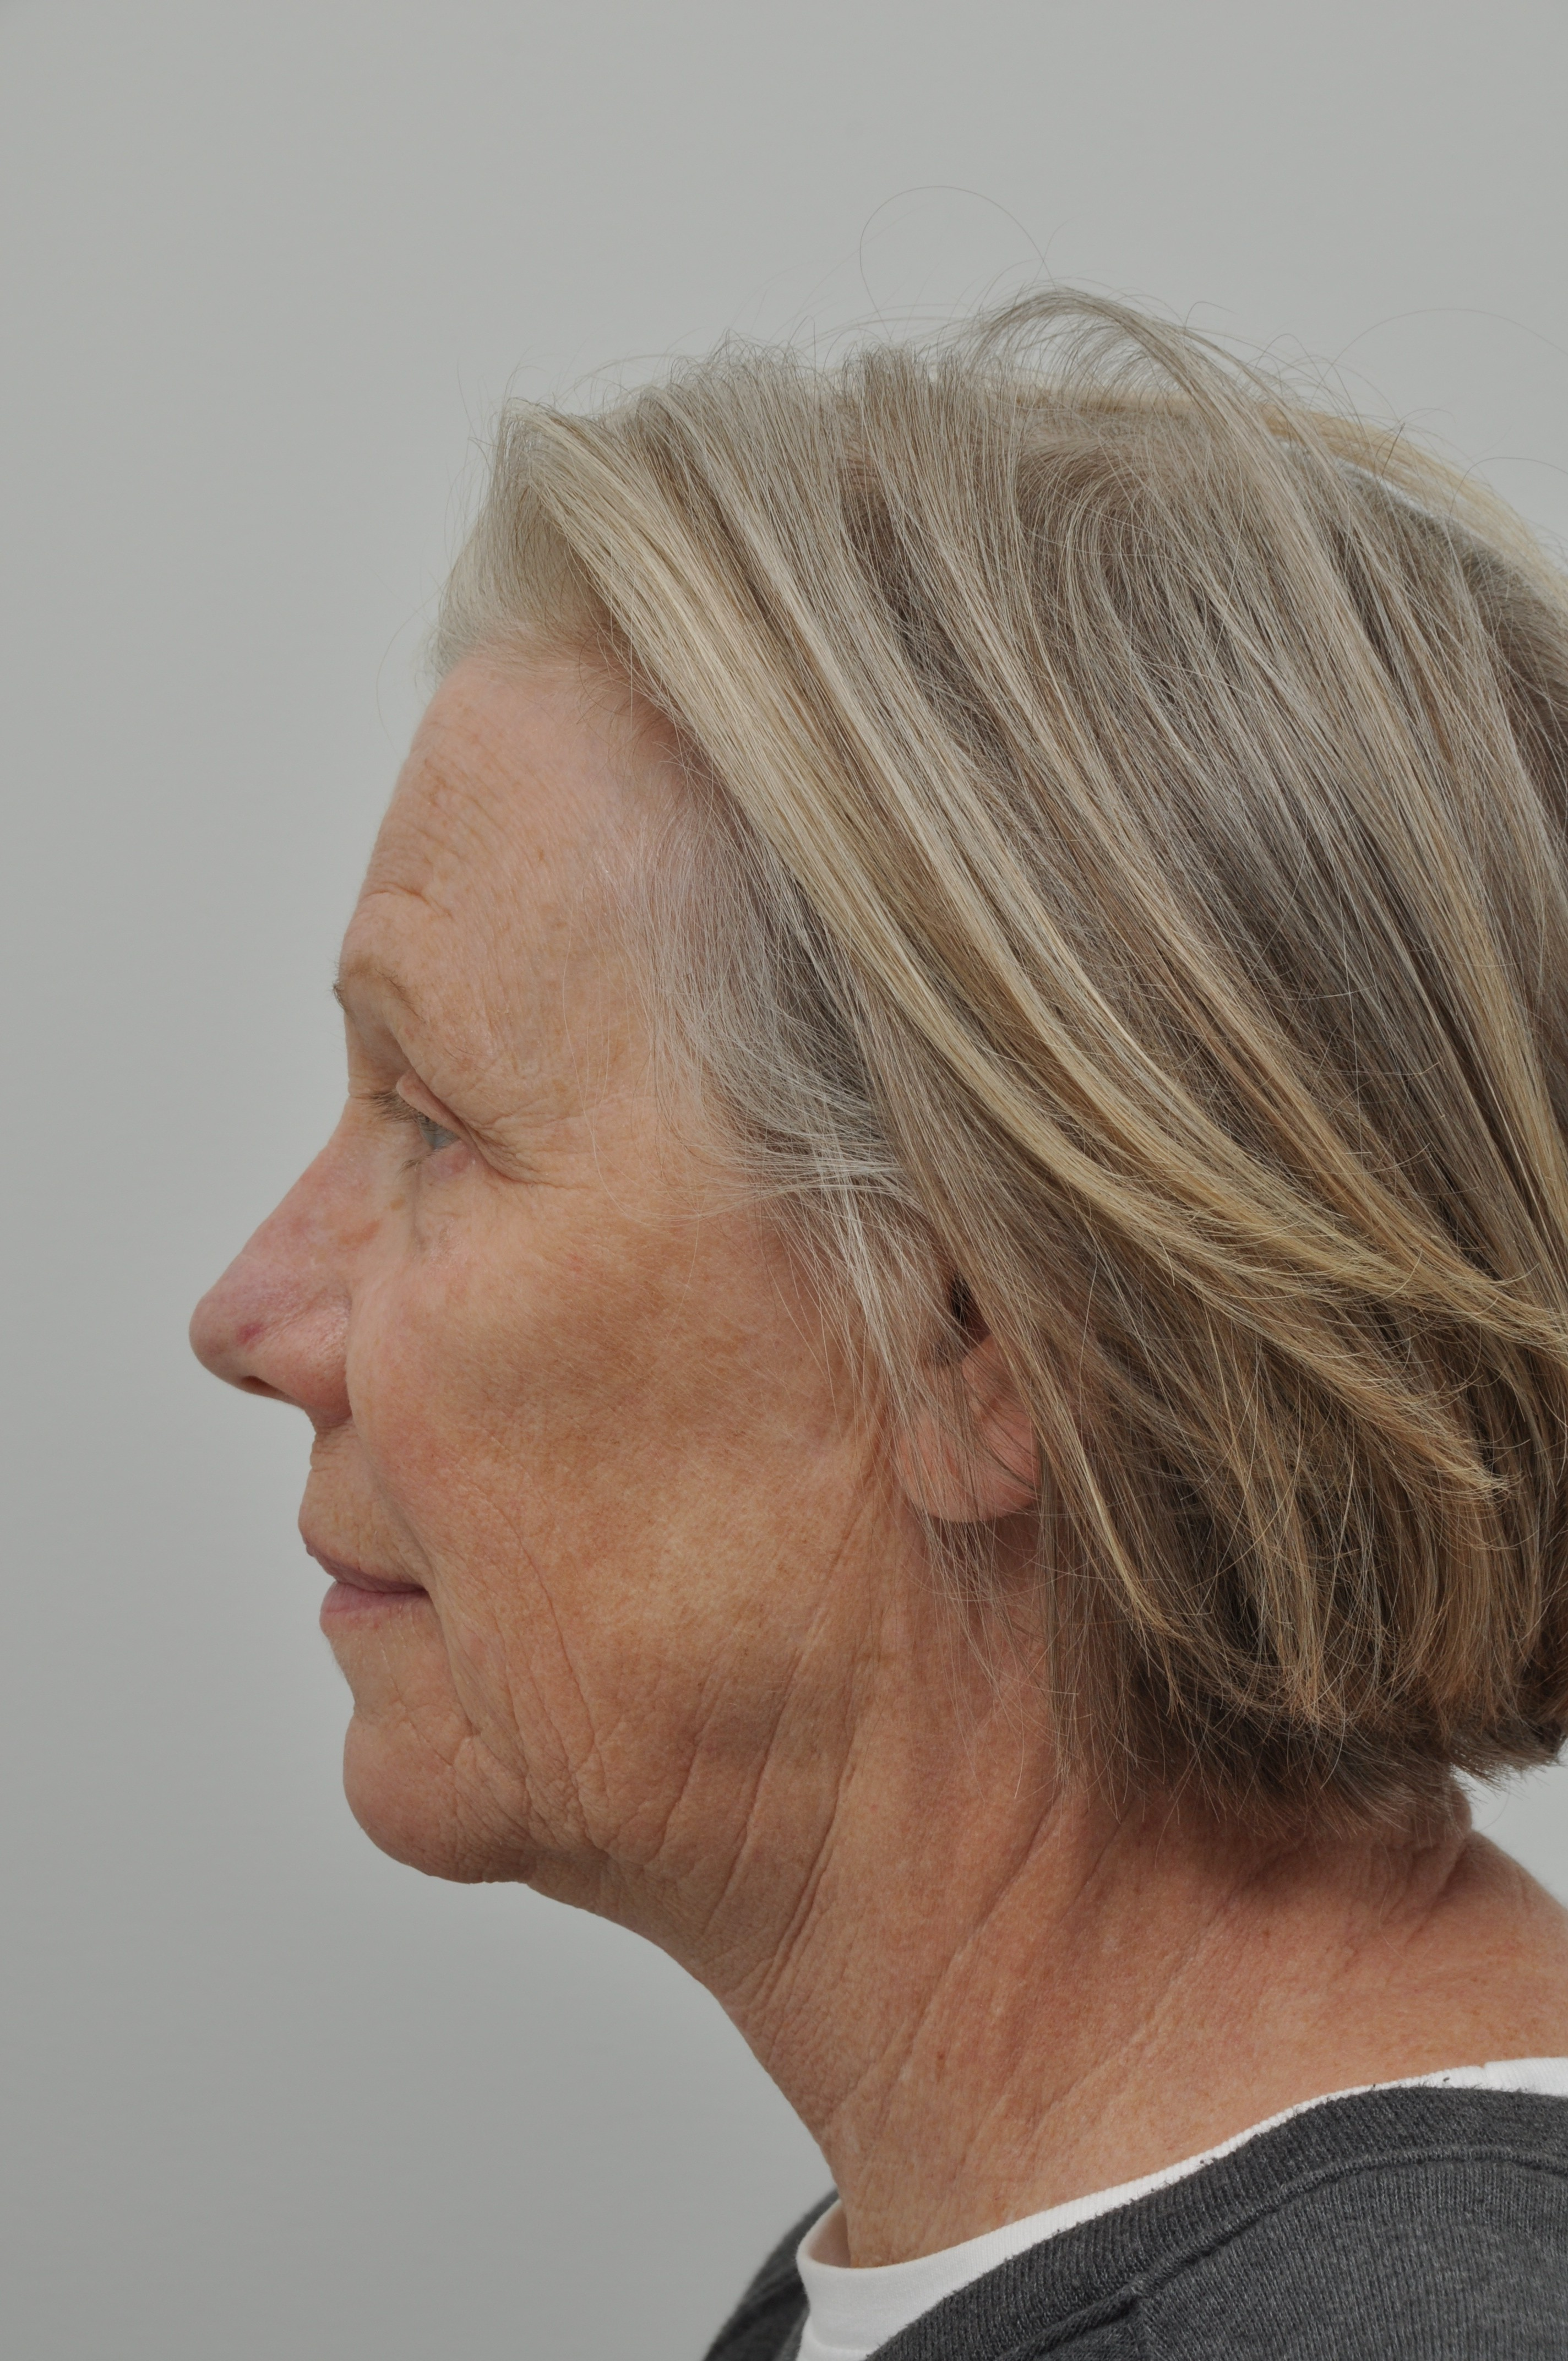 Before and After Facelift & Neck Lift & Facial Fat